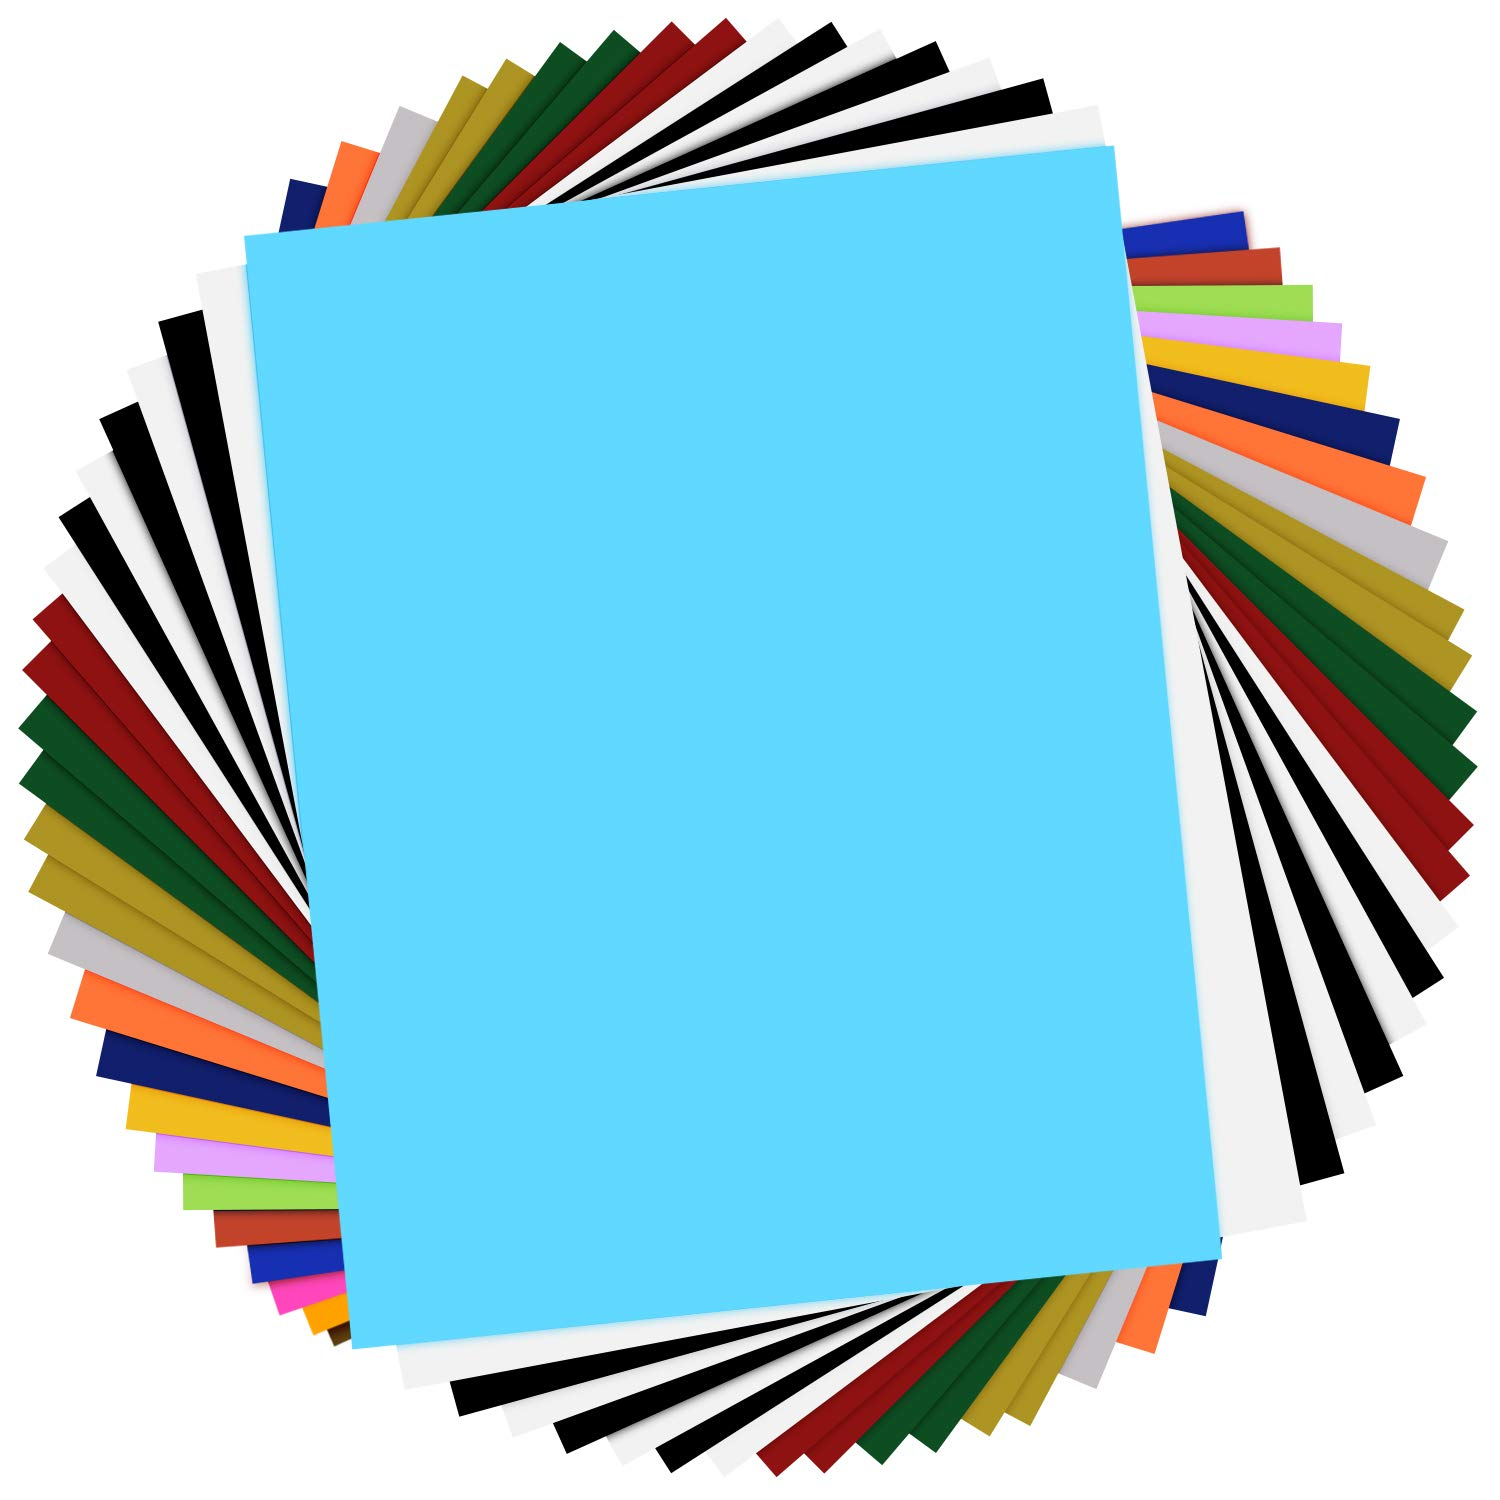 HTV Heat Transfer Vinyl Bundle - 25 Pack 12''x10'' Assorted Colors Sheets for DIY T-Shirts Clothing- Iron On Vinyl for Silhouette Cameo,Cricut or Heat Press Machine Tool-Teflon Sheet Included by HTVRONT